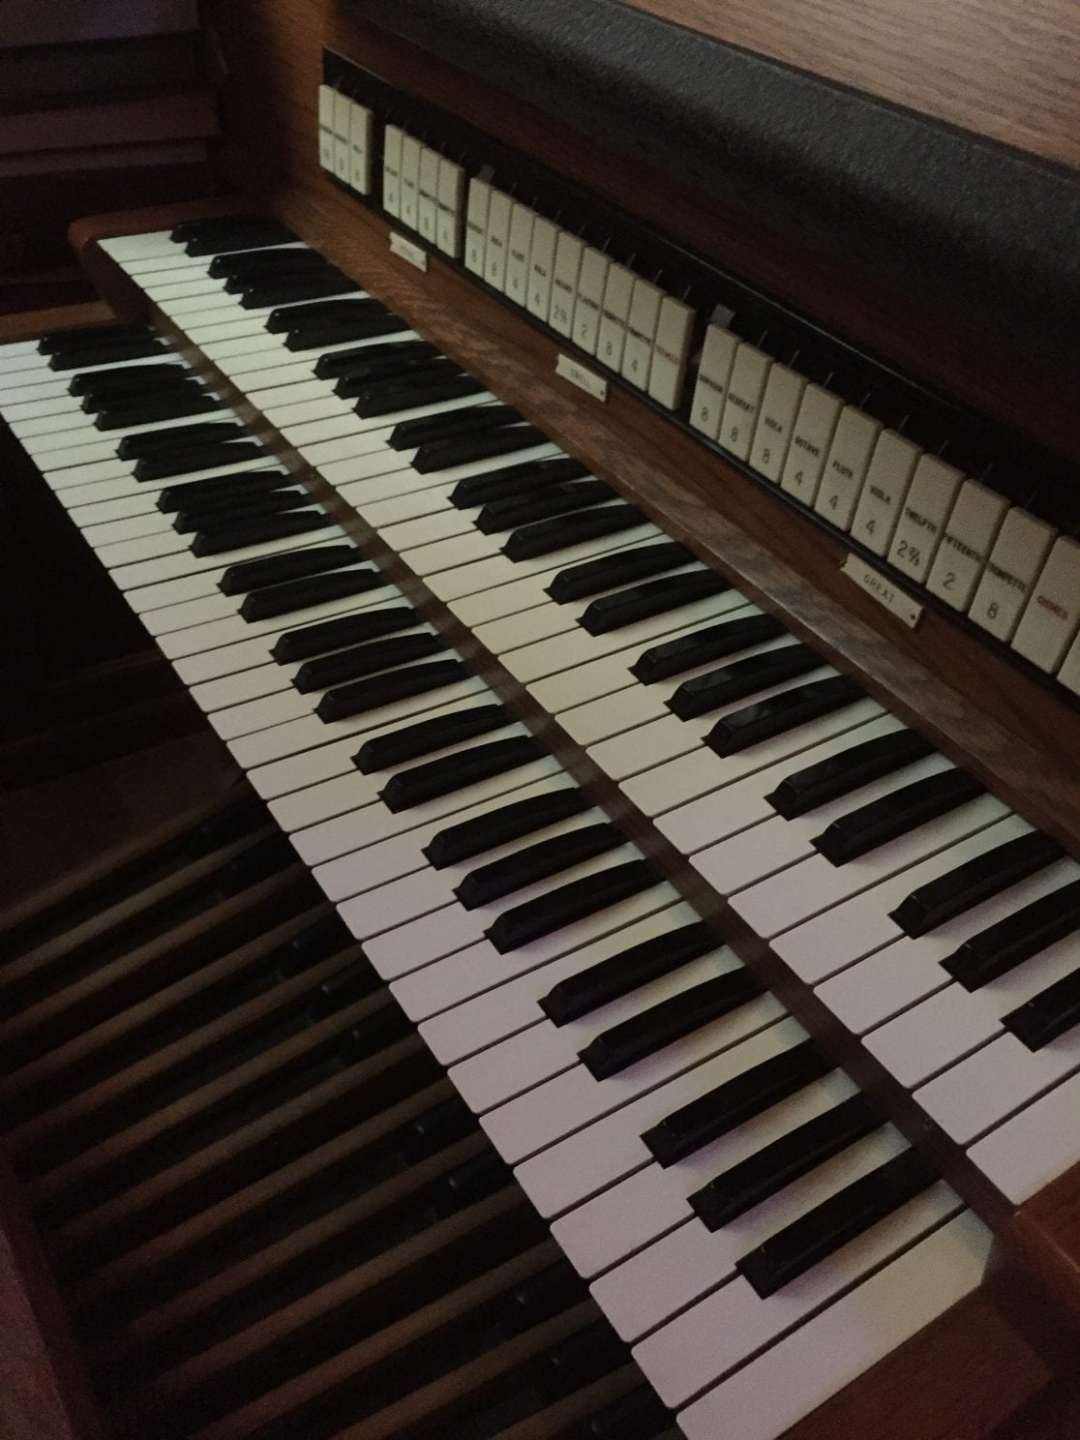 TN organ keys